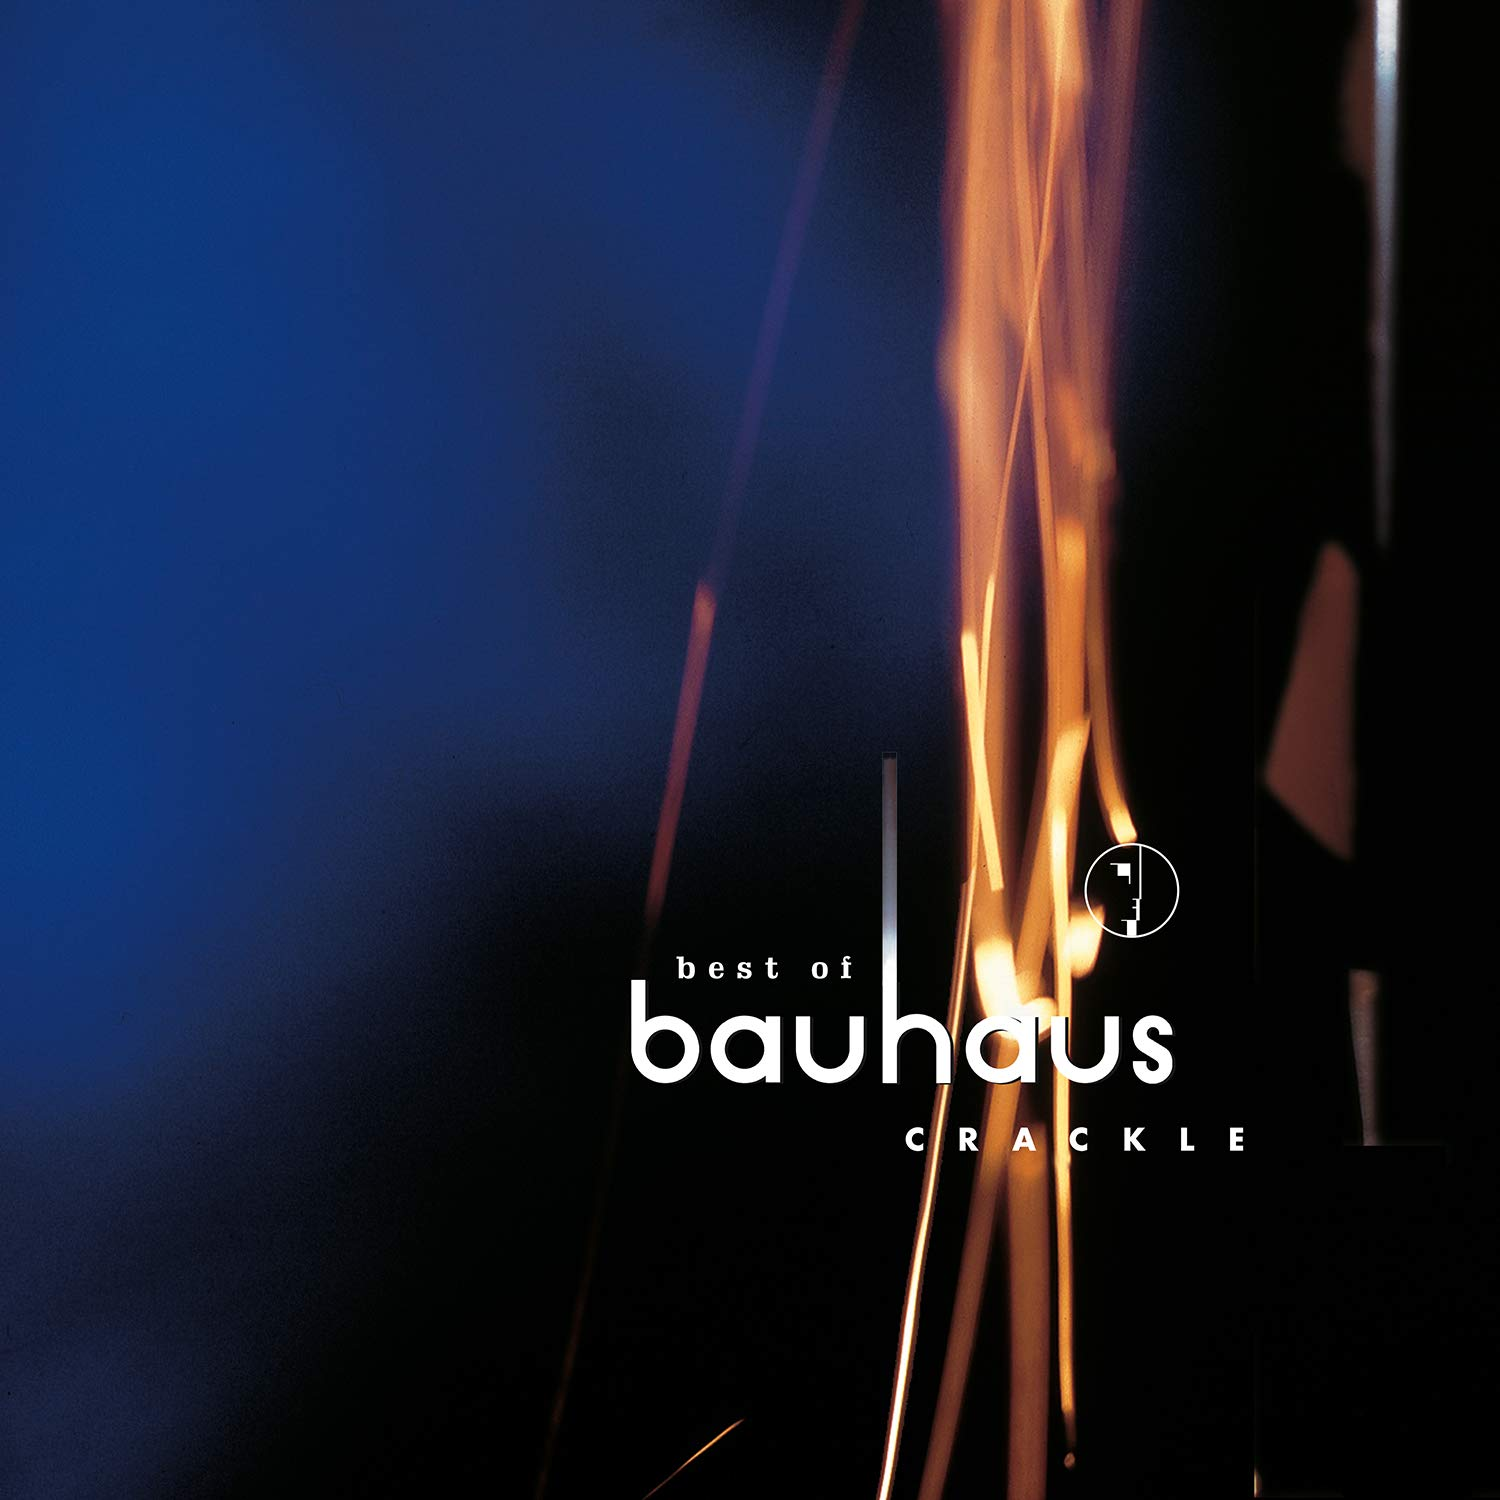 Bauhaus - Crackle: The Best Of Bauhaus Ruby